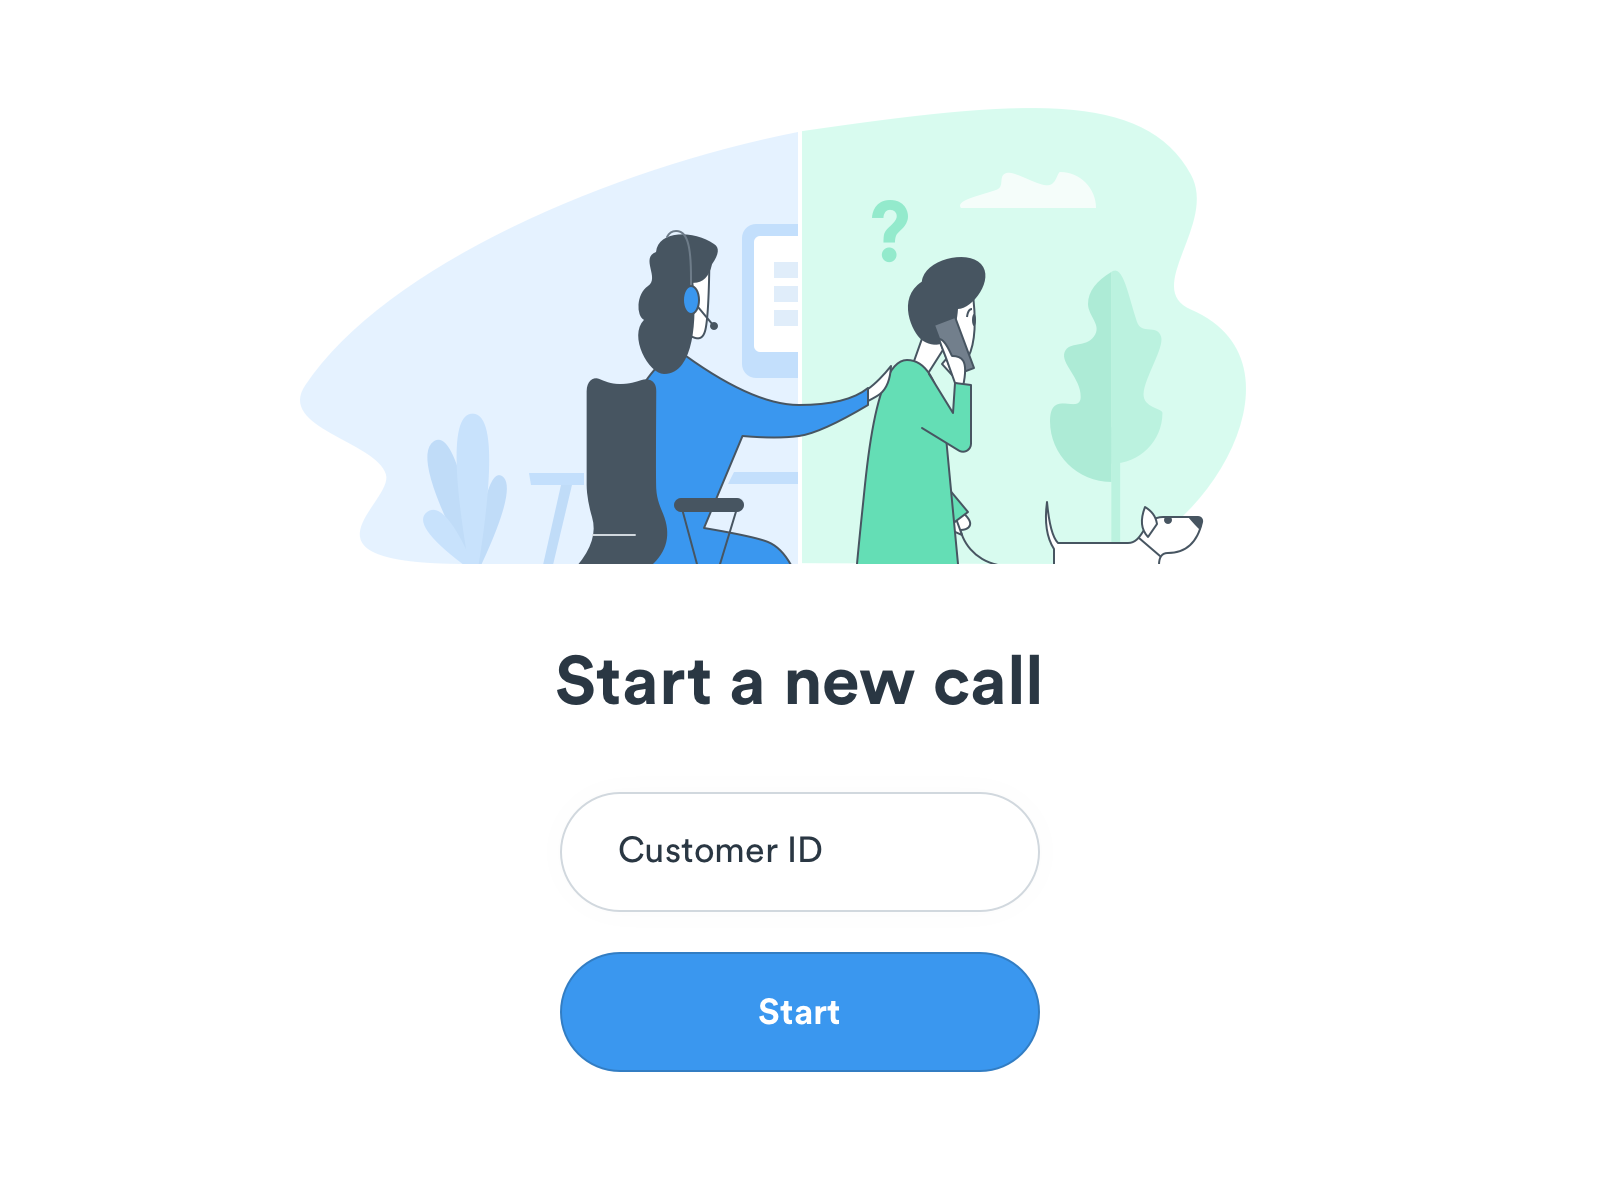 Call center platform - initial screen illustration customer insurance help call call center customer care support illustration app helpdesk welcome page character start login register